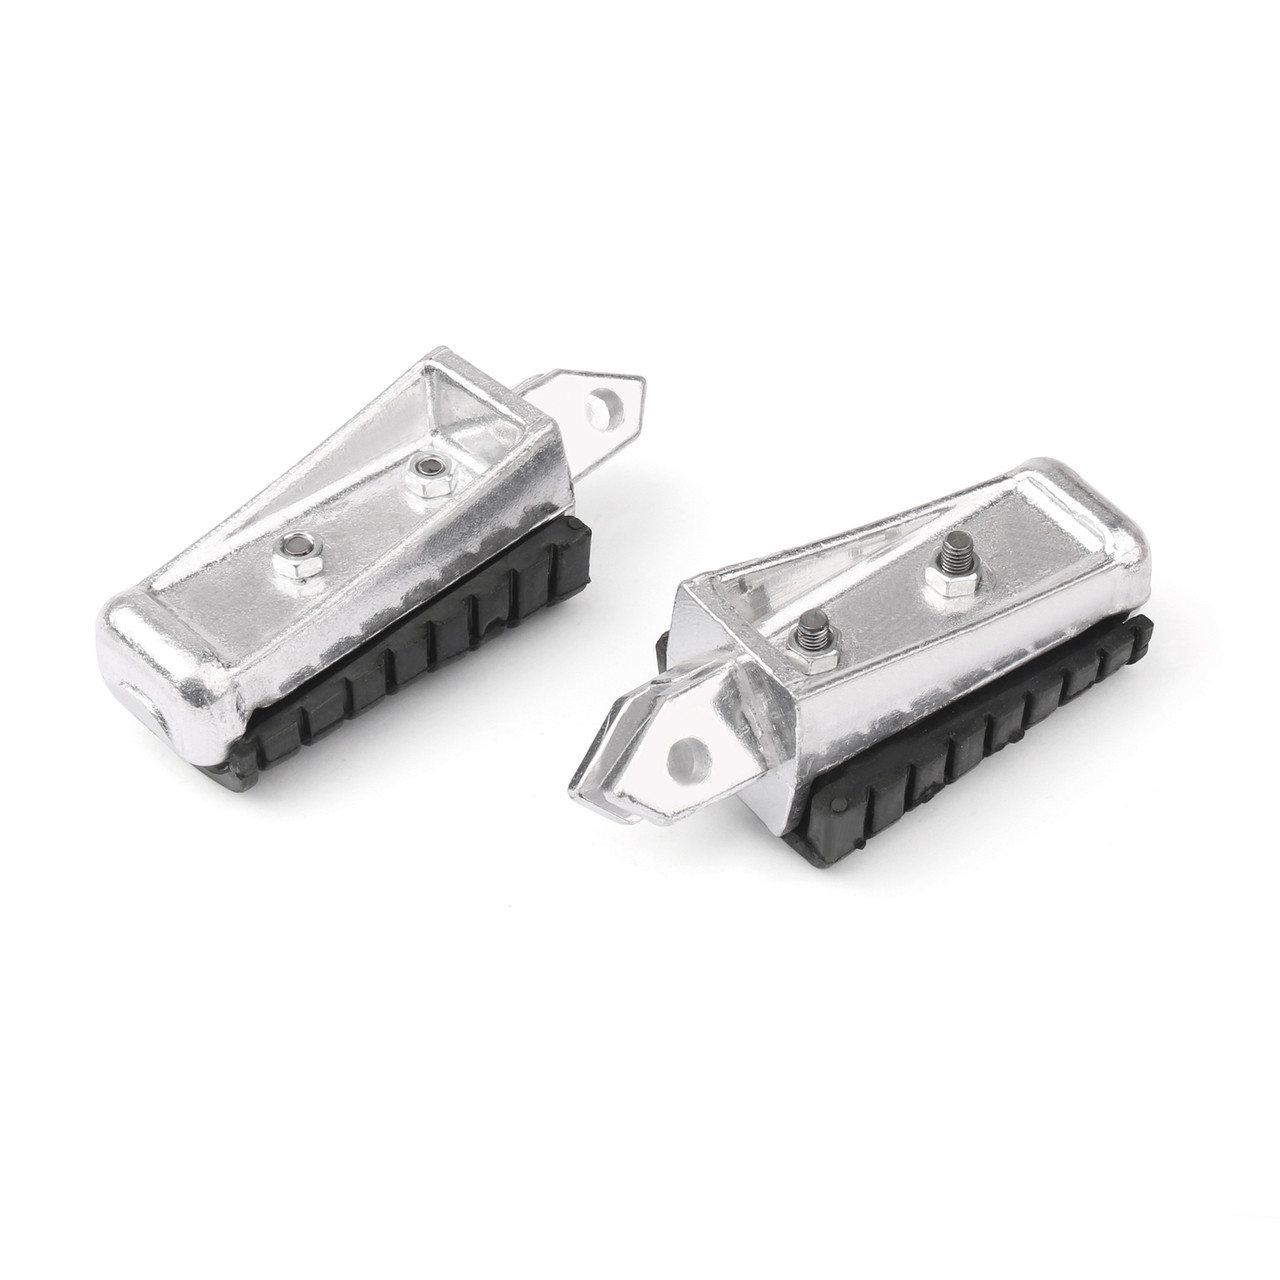 Foot Pegs Front Footrest for Yamaha XV125 VIRAGO 125 (97-00) XV250 VIRAGO 250 (88-13) XV400 VIRAGO 400 (91-94) XV535 VIRAGO 535 (88-01)